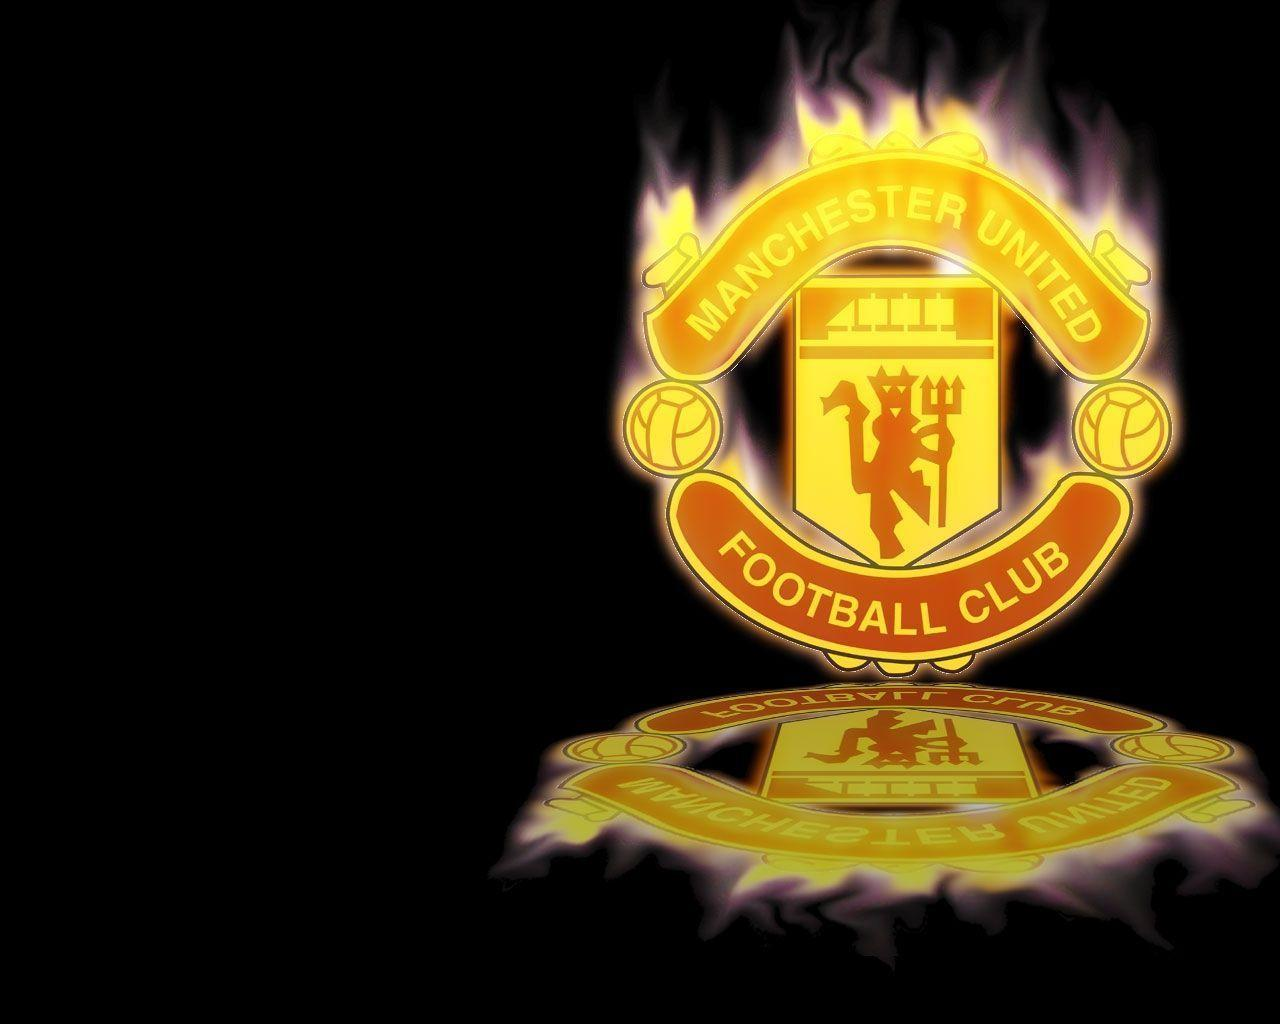 Manchester United Wallpapers 3D 2015 - Wallpaper Cave